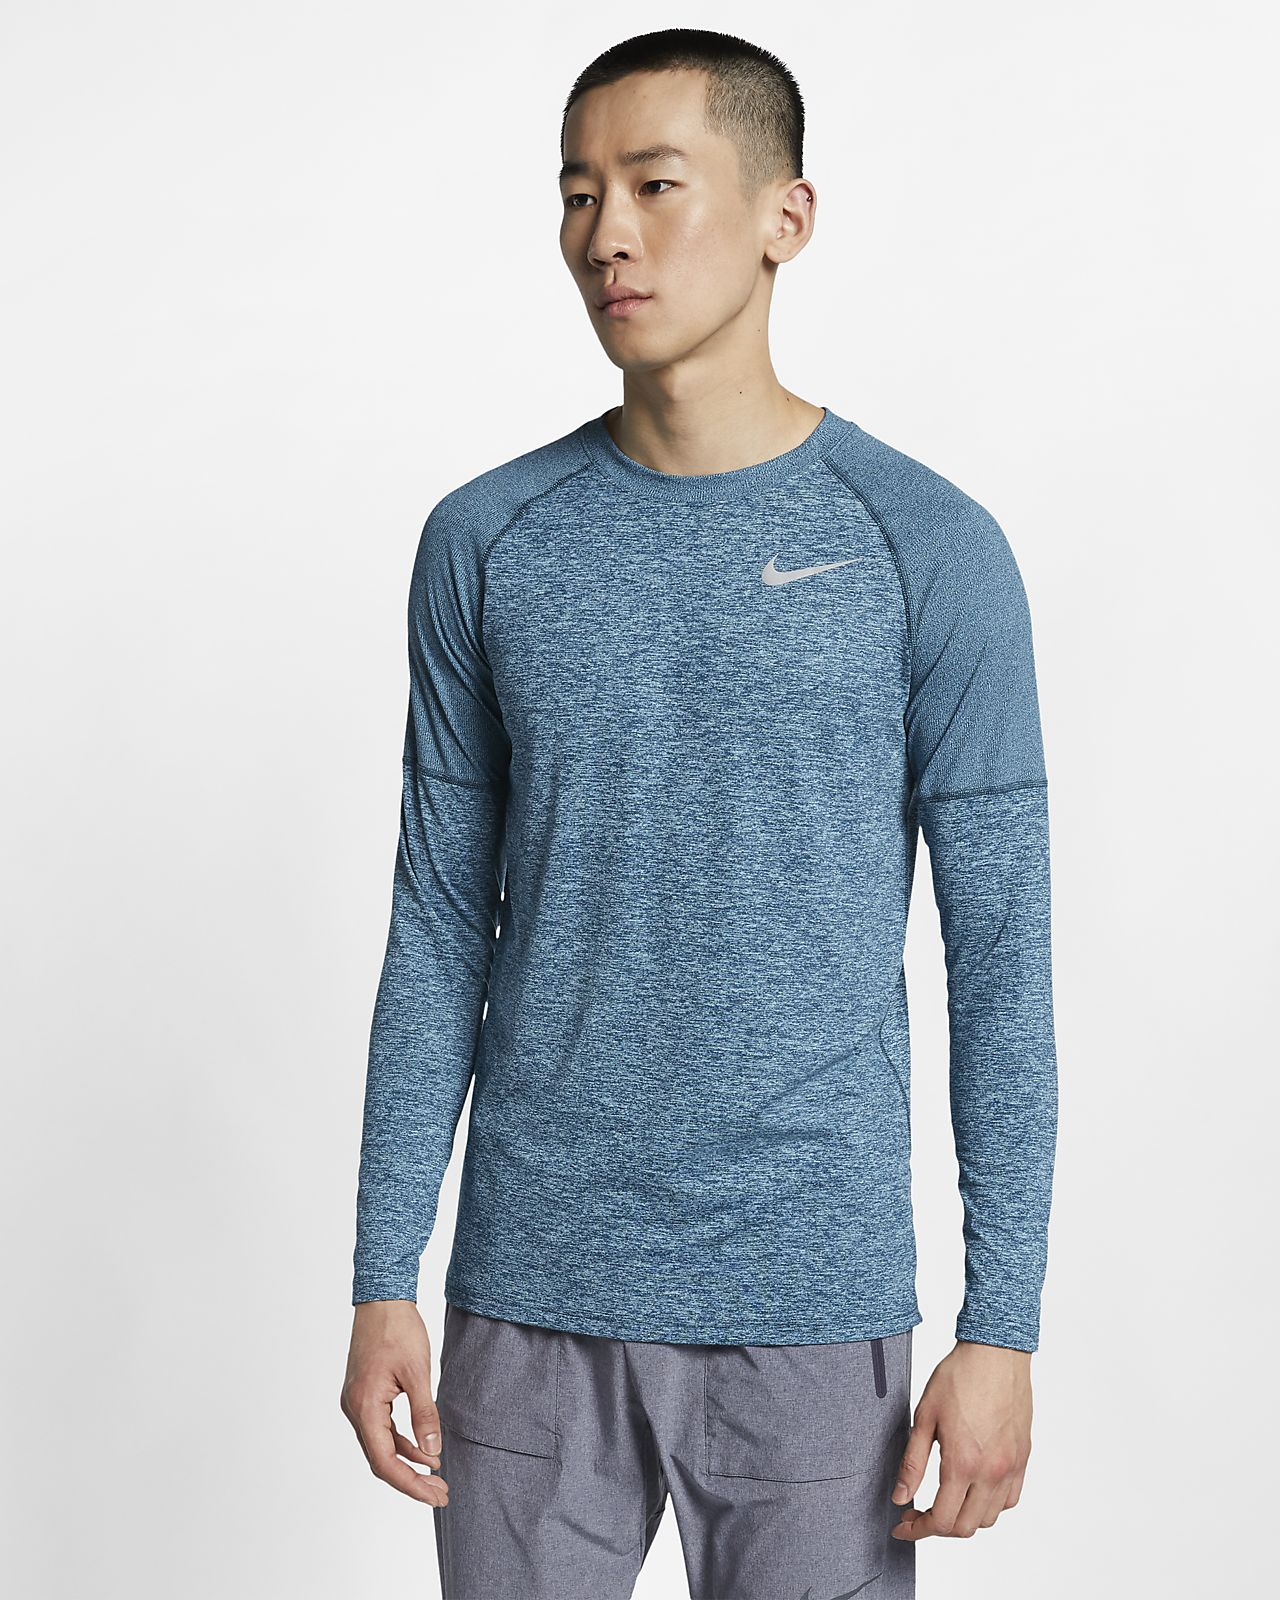 Nike Men's Running Top